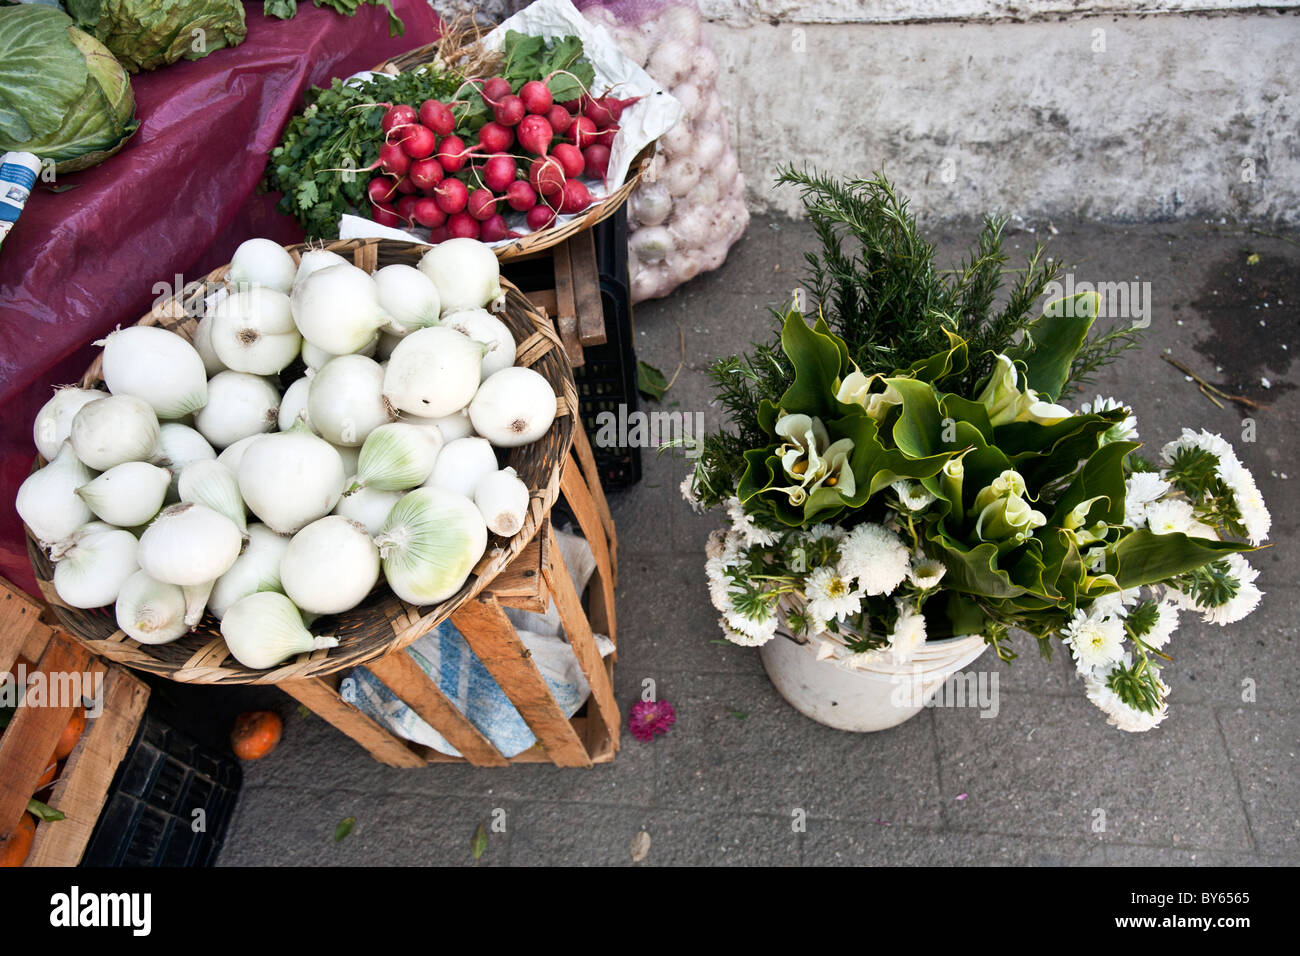 colorful grouping of pure white onions red radishes & calla lilies for sale on main street of Puerto Angel Oaxaca - Stock Image